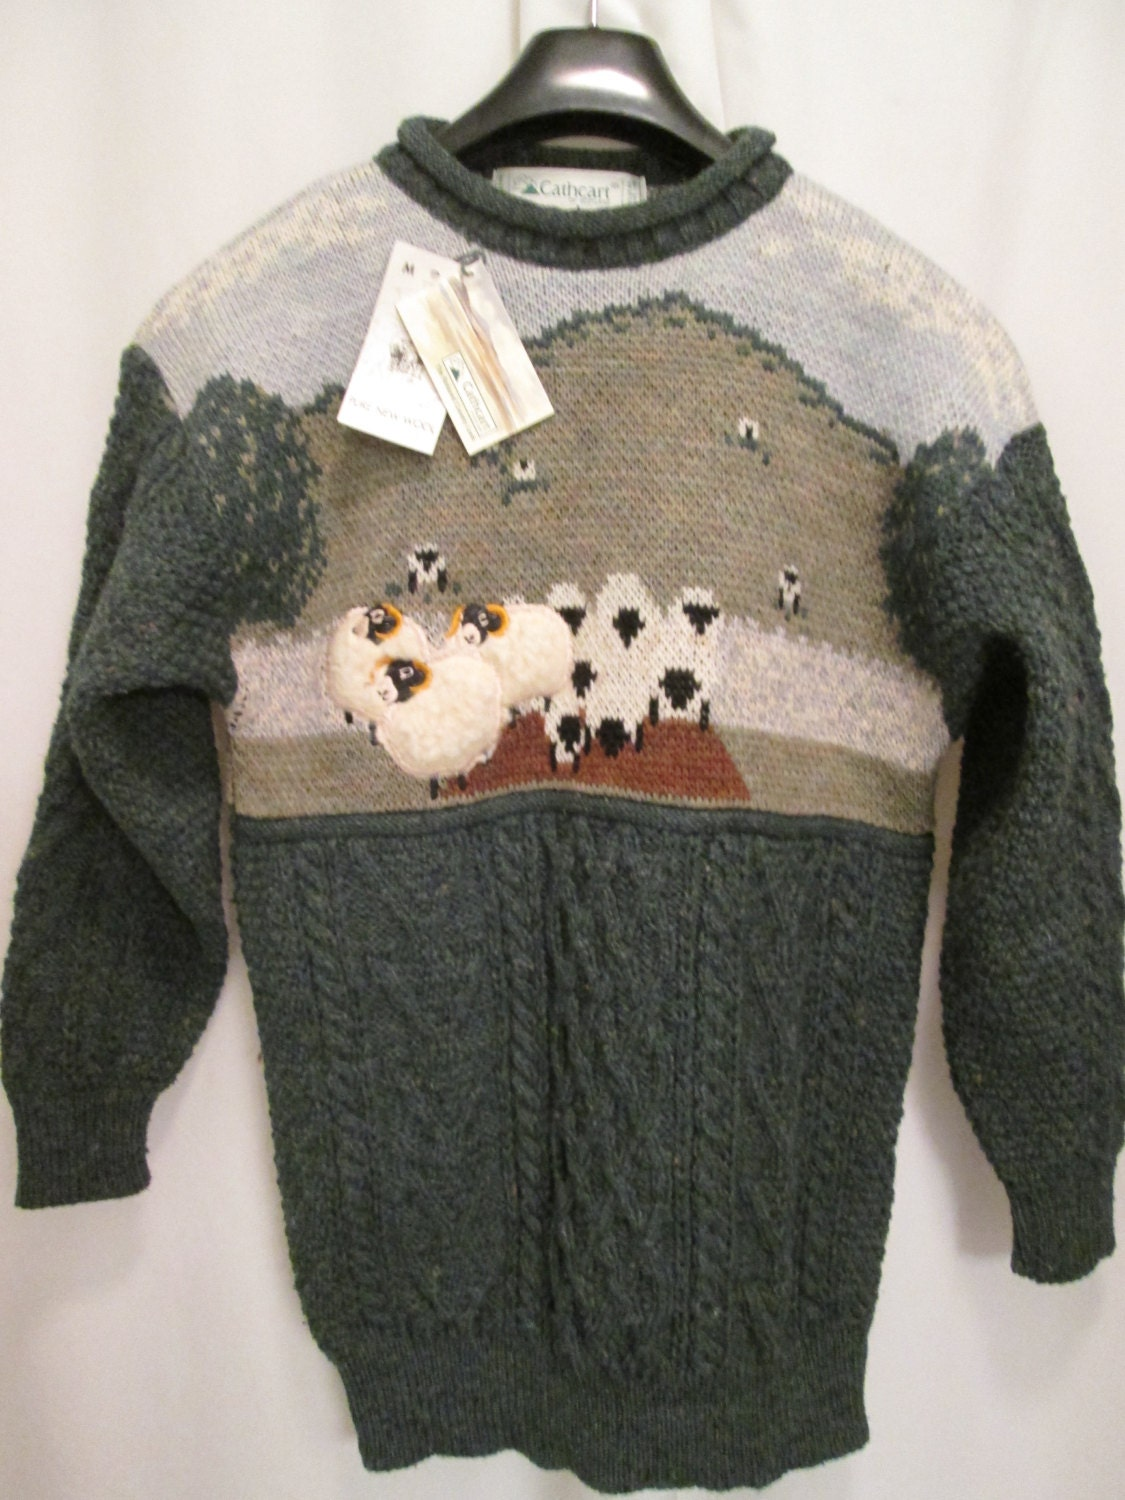 Sheep Knitting A Sweater : Vintage cathcart hand knit felted sheep scottish sweater in